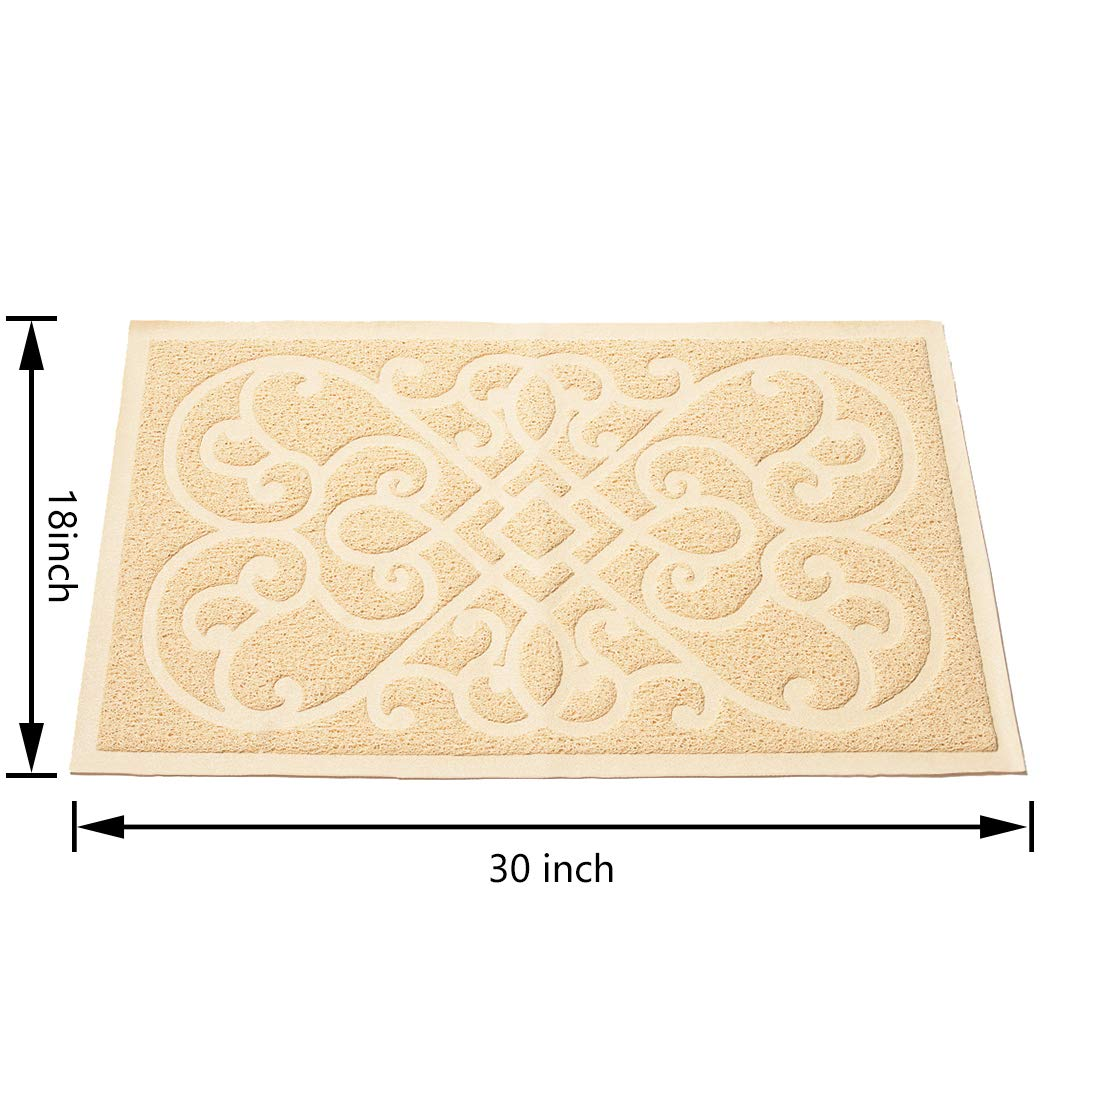 30 x18 inches PetLike Durable Cat Litter Trapping/Mat Scatter Control Traps Litter from Box and Cats Soft on Kitty Paws